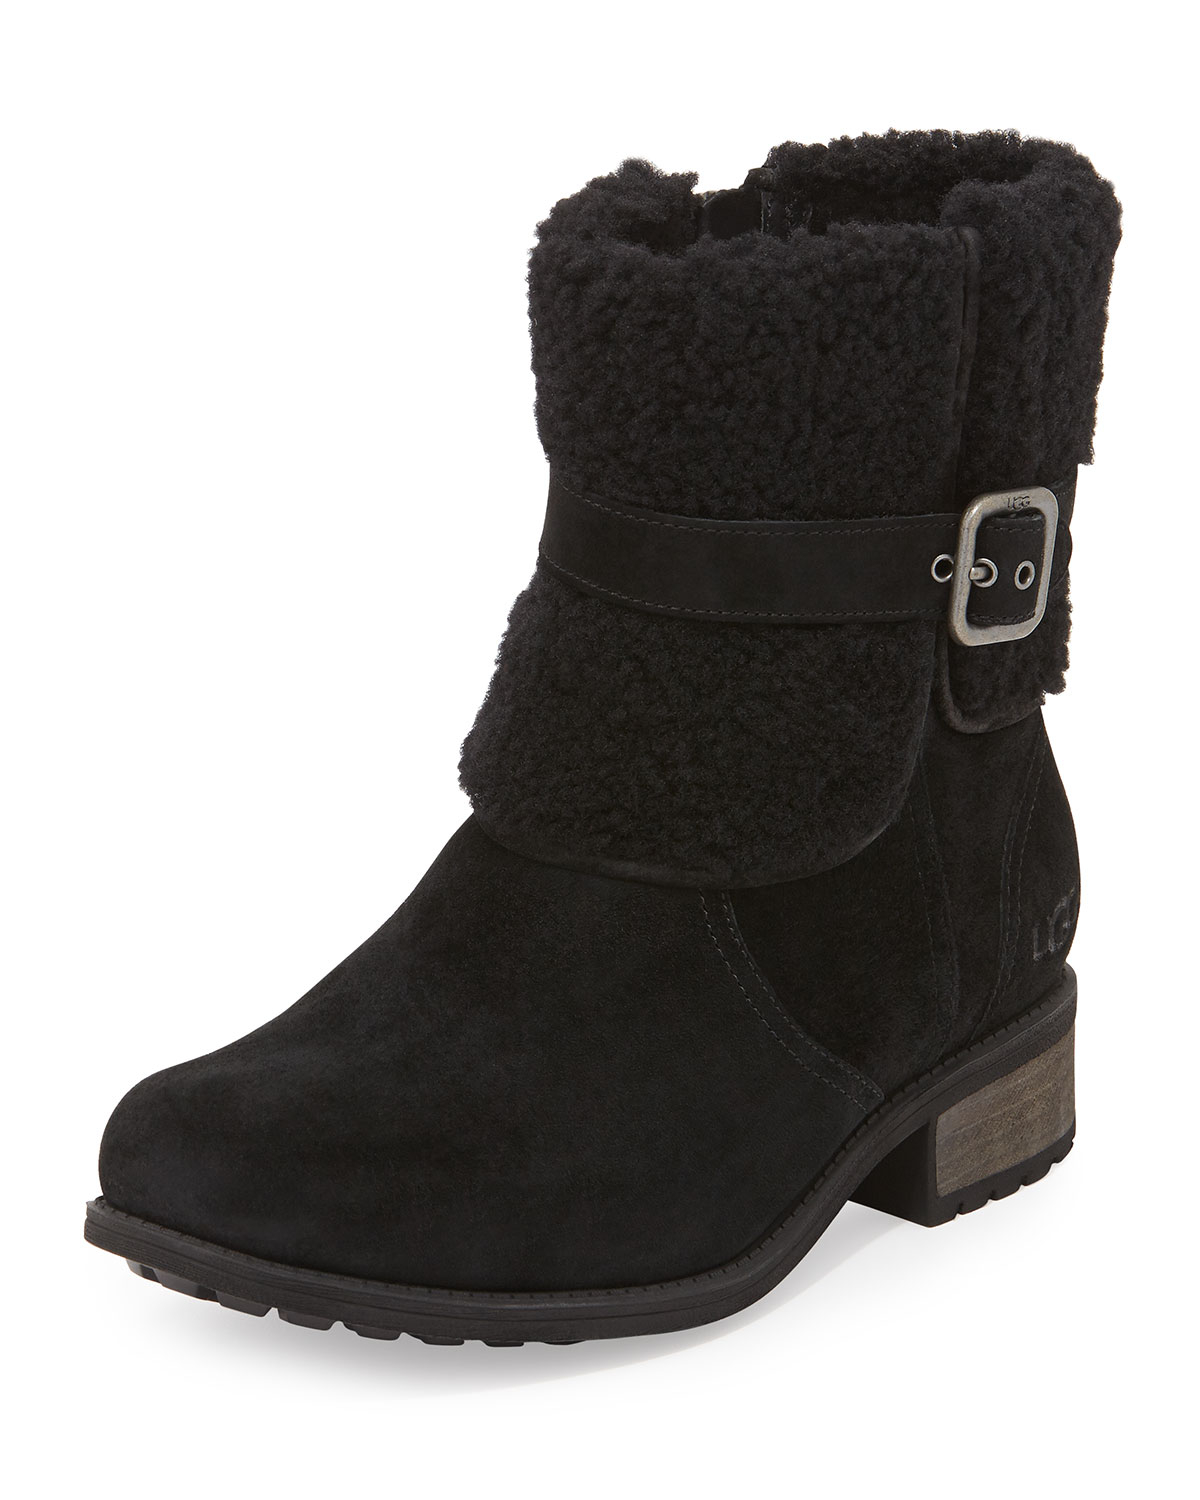 When UGG boots come out for winter, it seems that you're the only one without them because they're made out of animals. But you don't have to be! There are vegan alternative to UGG boots available at a fraction of the cost, minus the cruelty! You can even achieve a similar look or style if you wish.